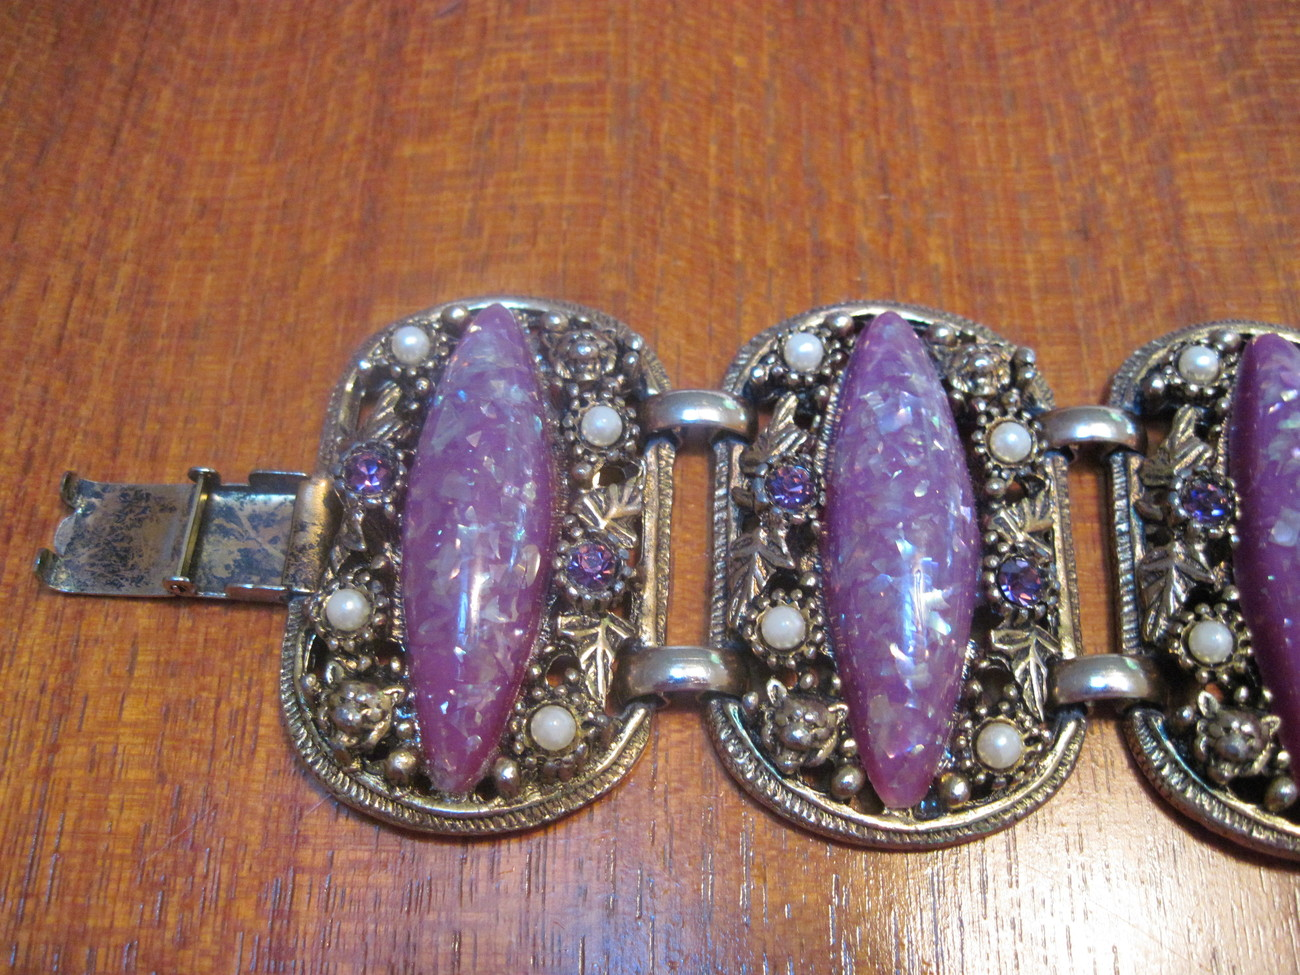 Vintage Jewelry Necklace, Earring & Bracelet Purple